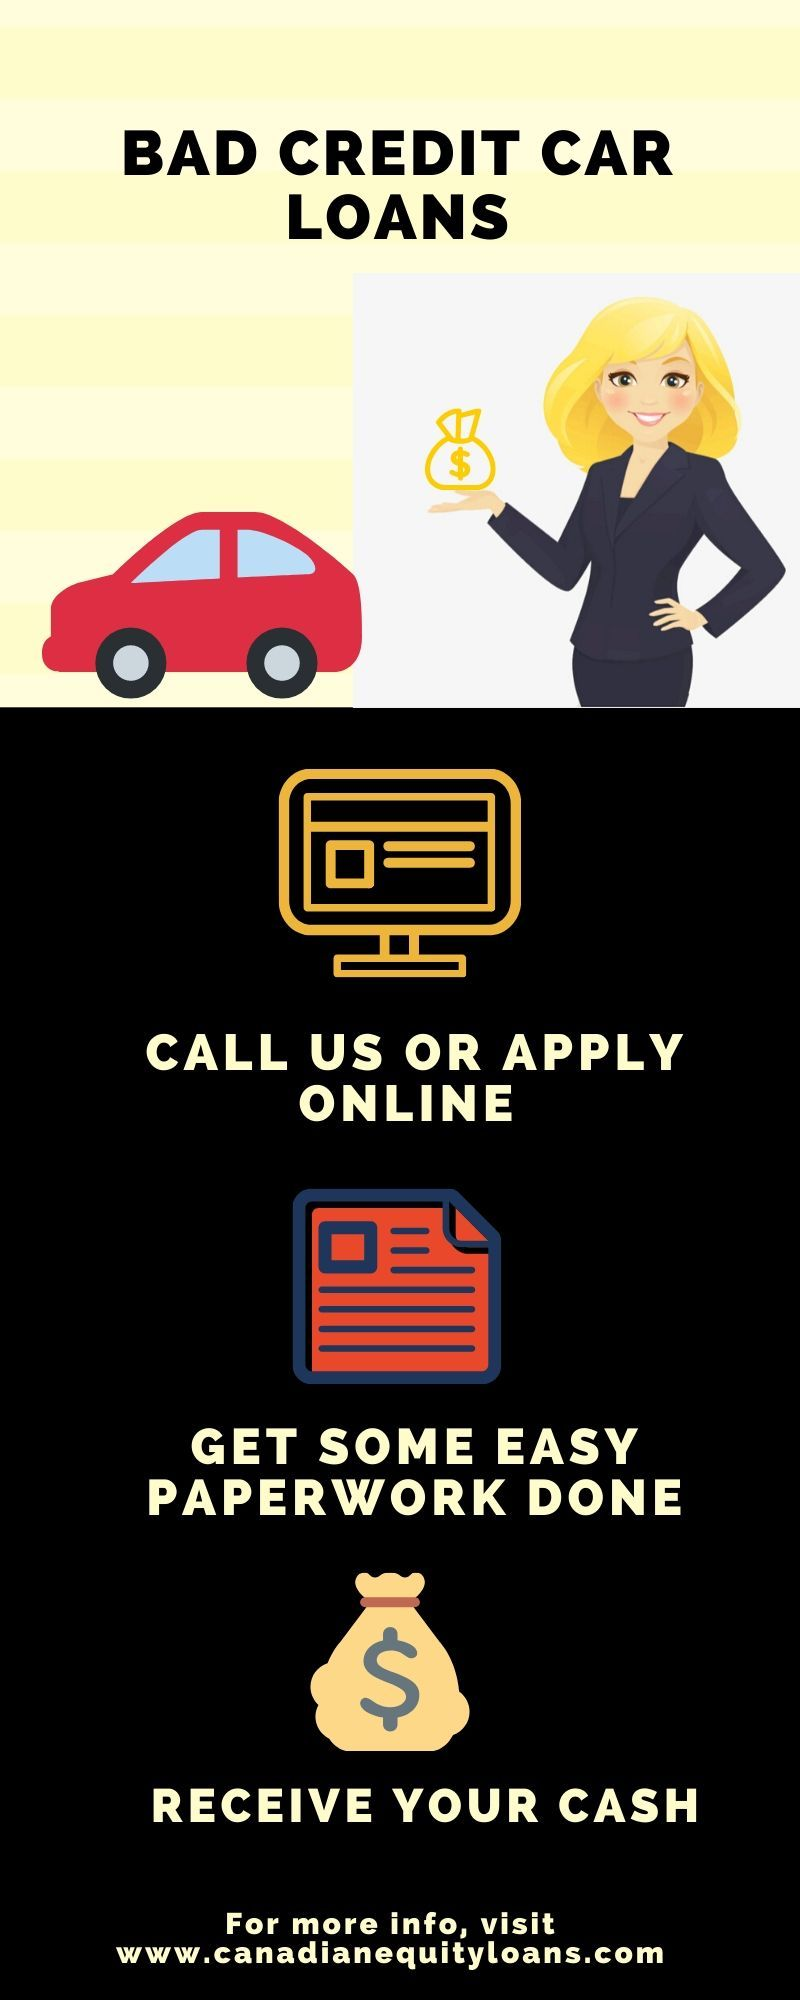 Is It Easy To Get The Fund With Bad Credit Car Loans In Calgary In 2020 Bad Credit Car Loan Bad Credit Loans For Bad Credit